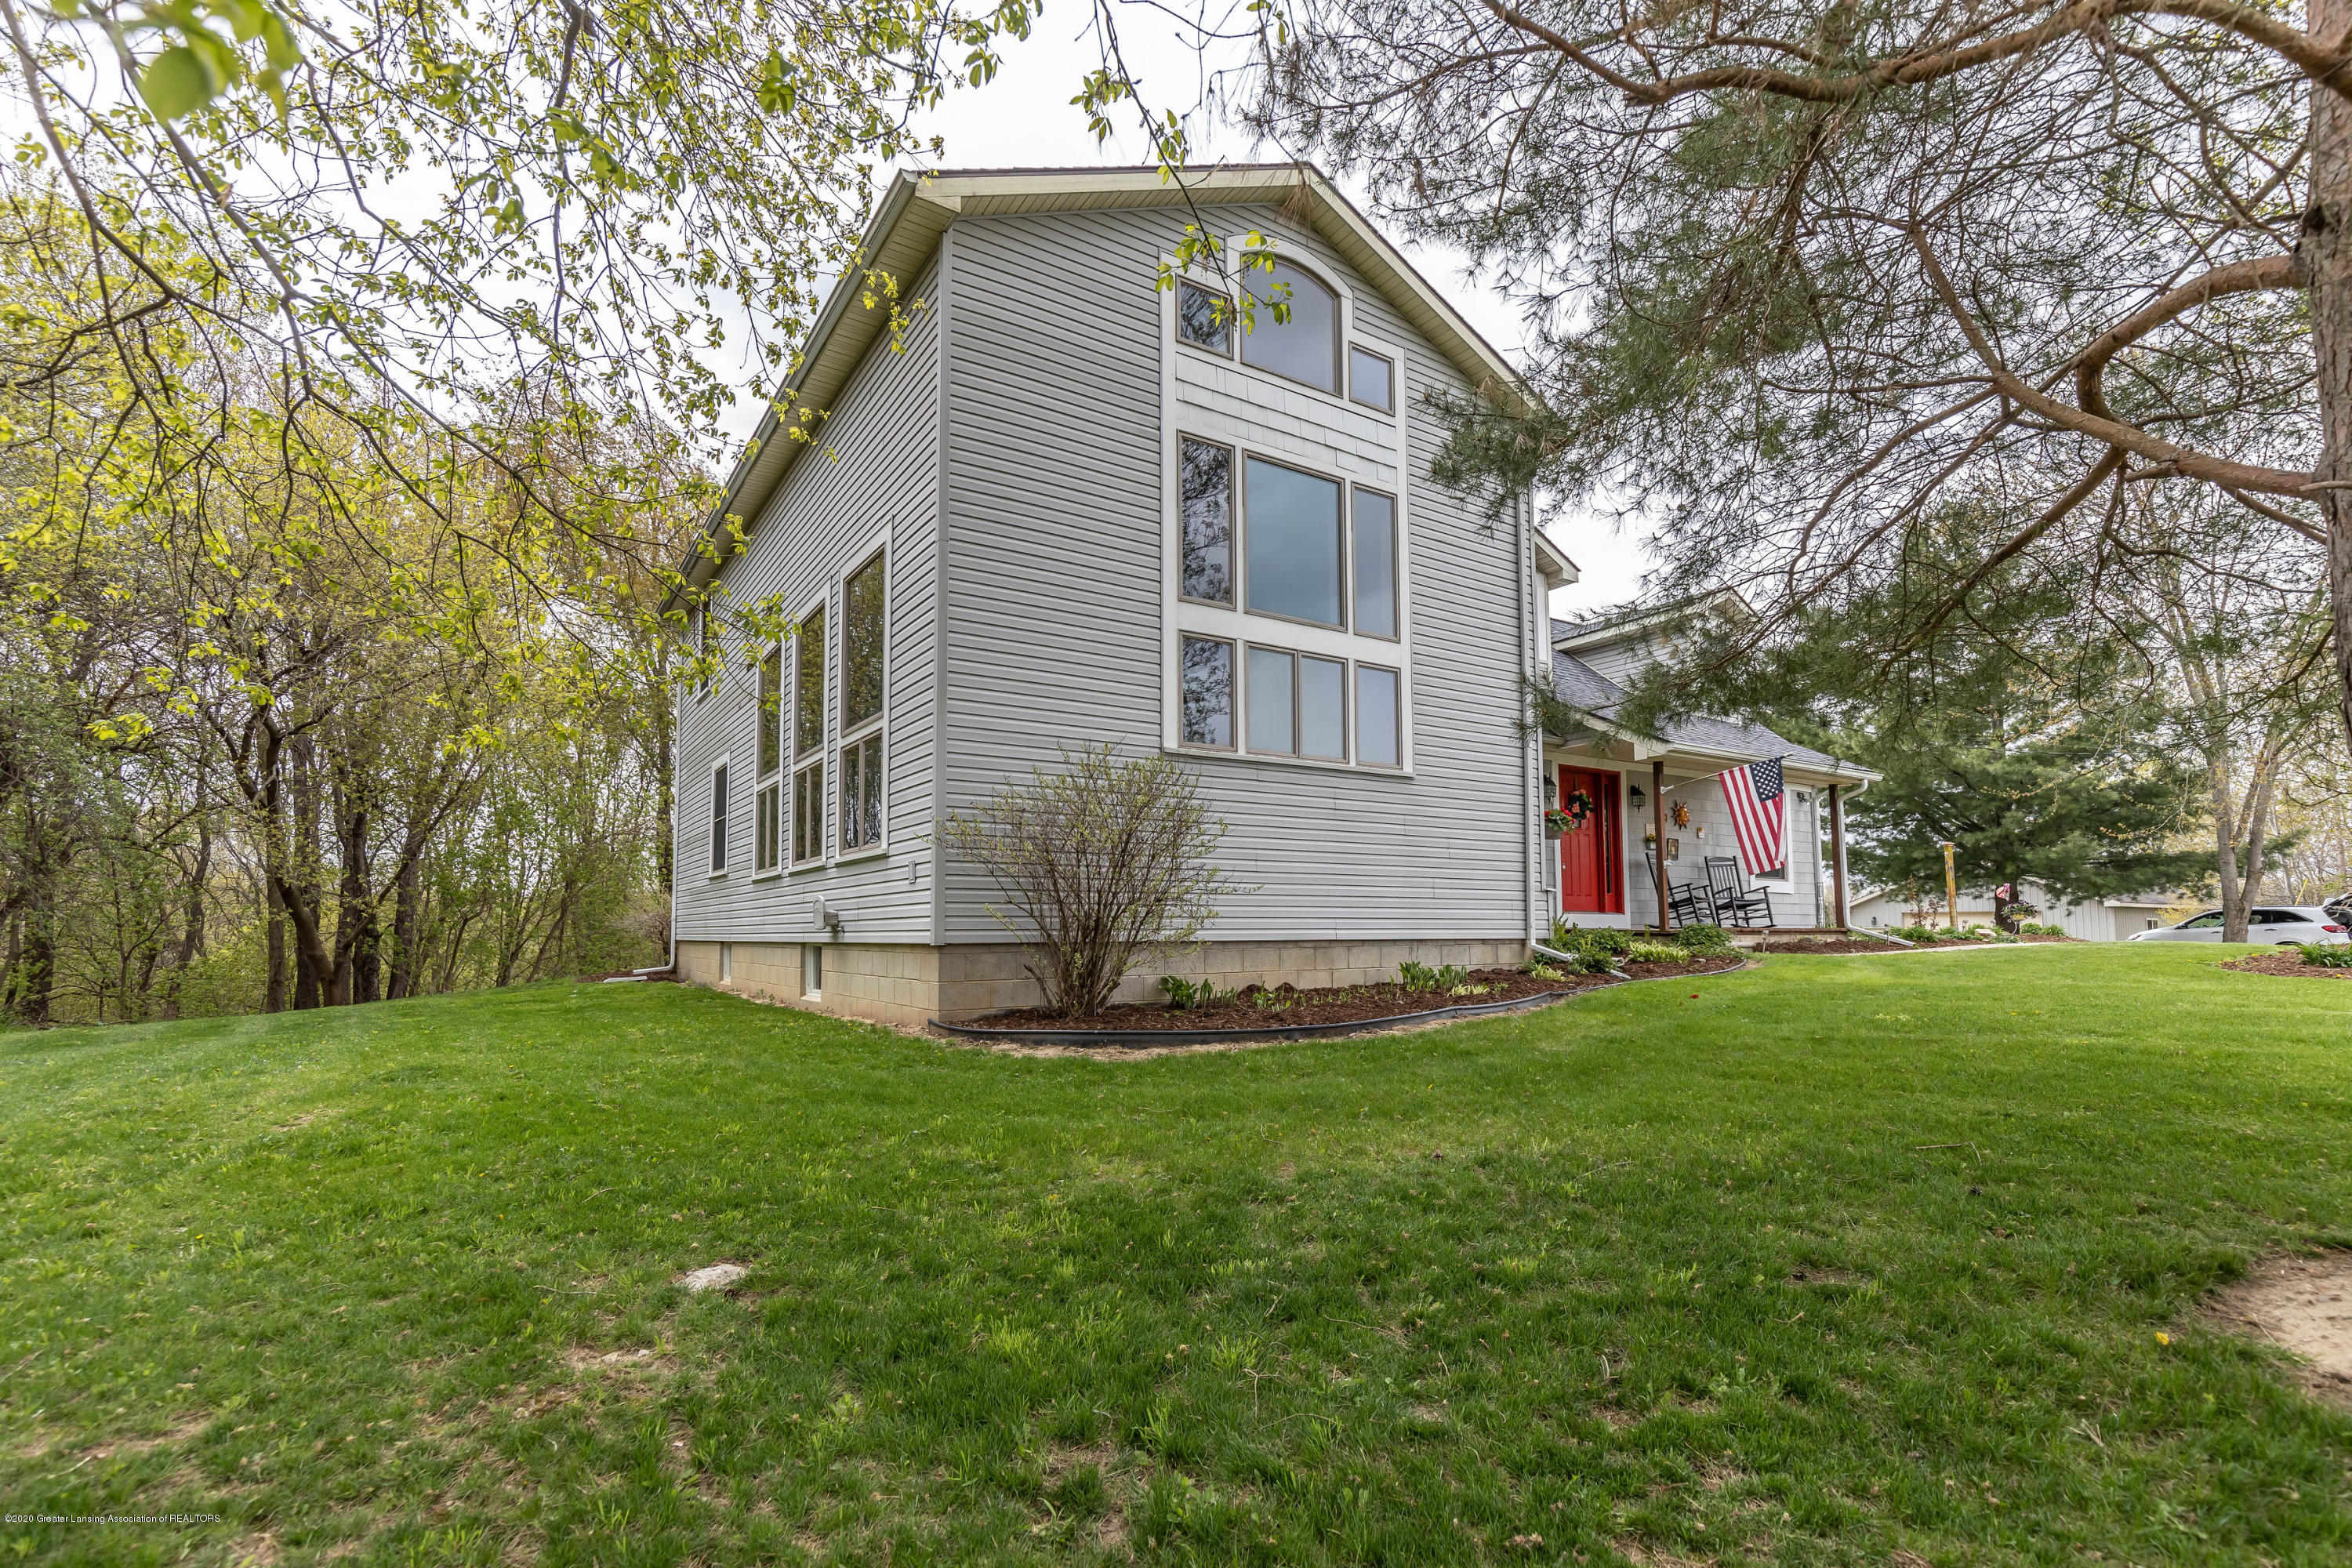 5189 Pittsburg Rd - pittsfront7(1of1) - 66